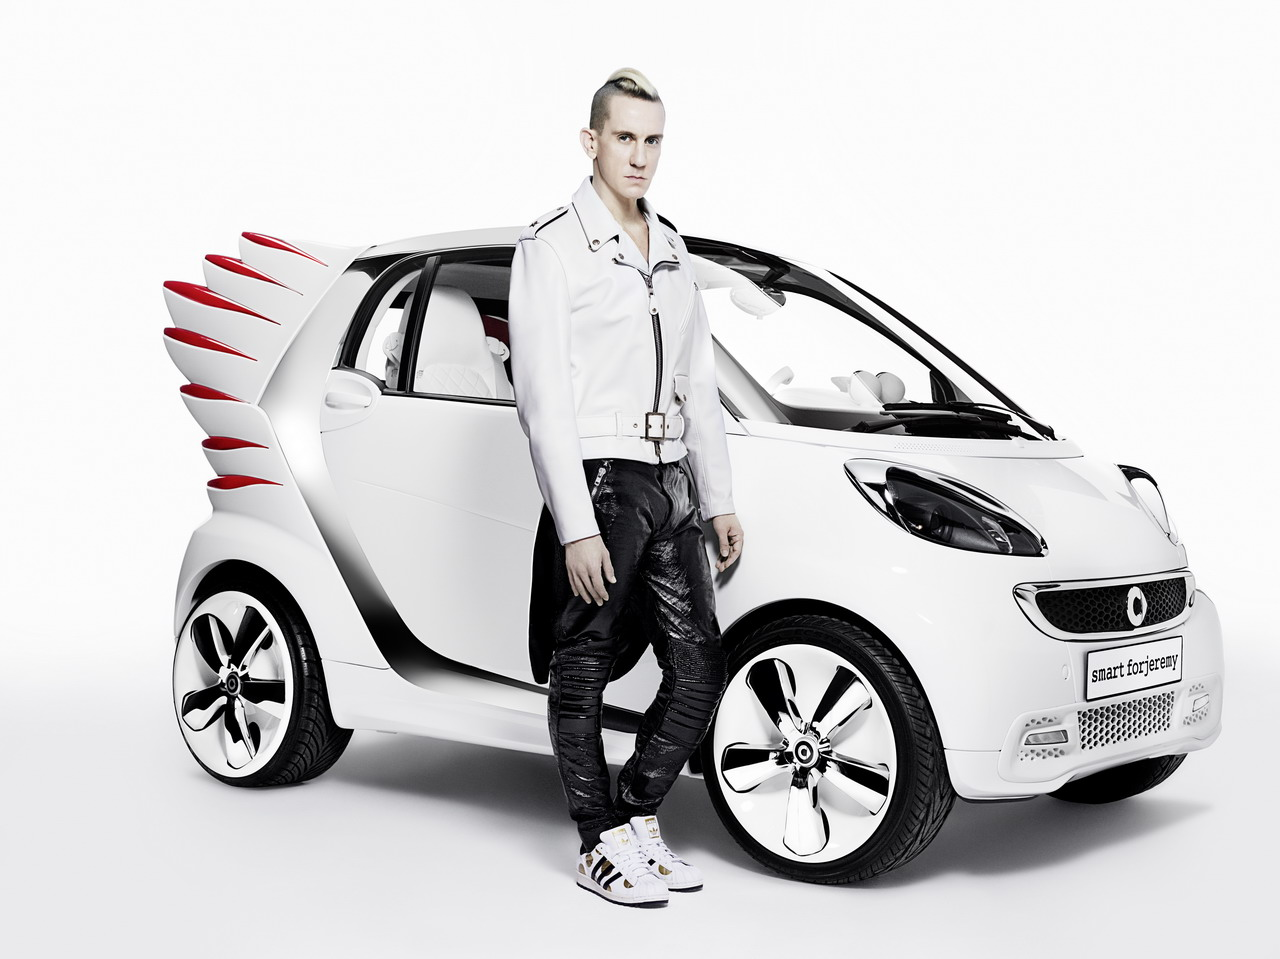 Jeremy Scott smart car1 JEREMY SCOTT x SMART CAR TOKYO PARTY